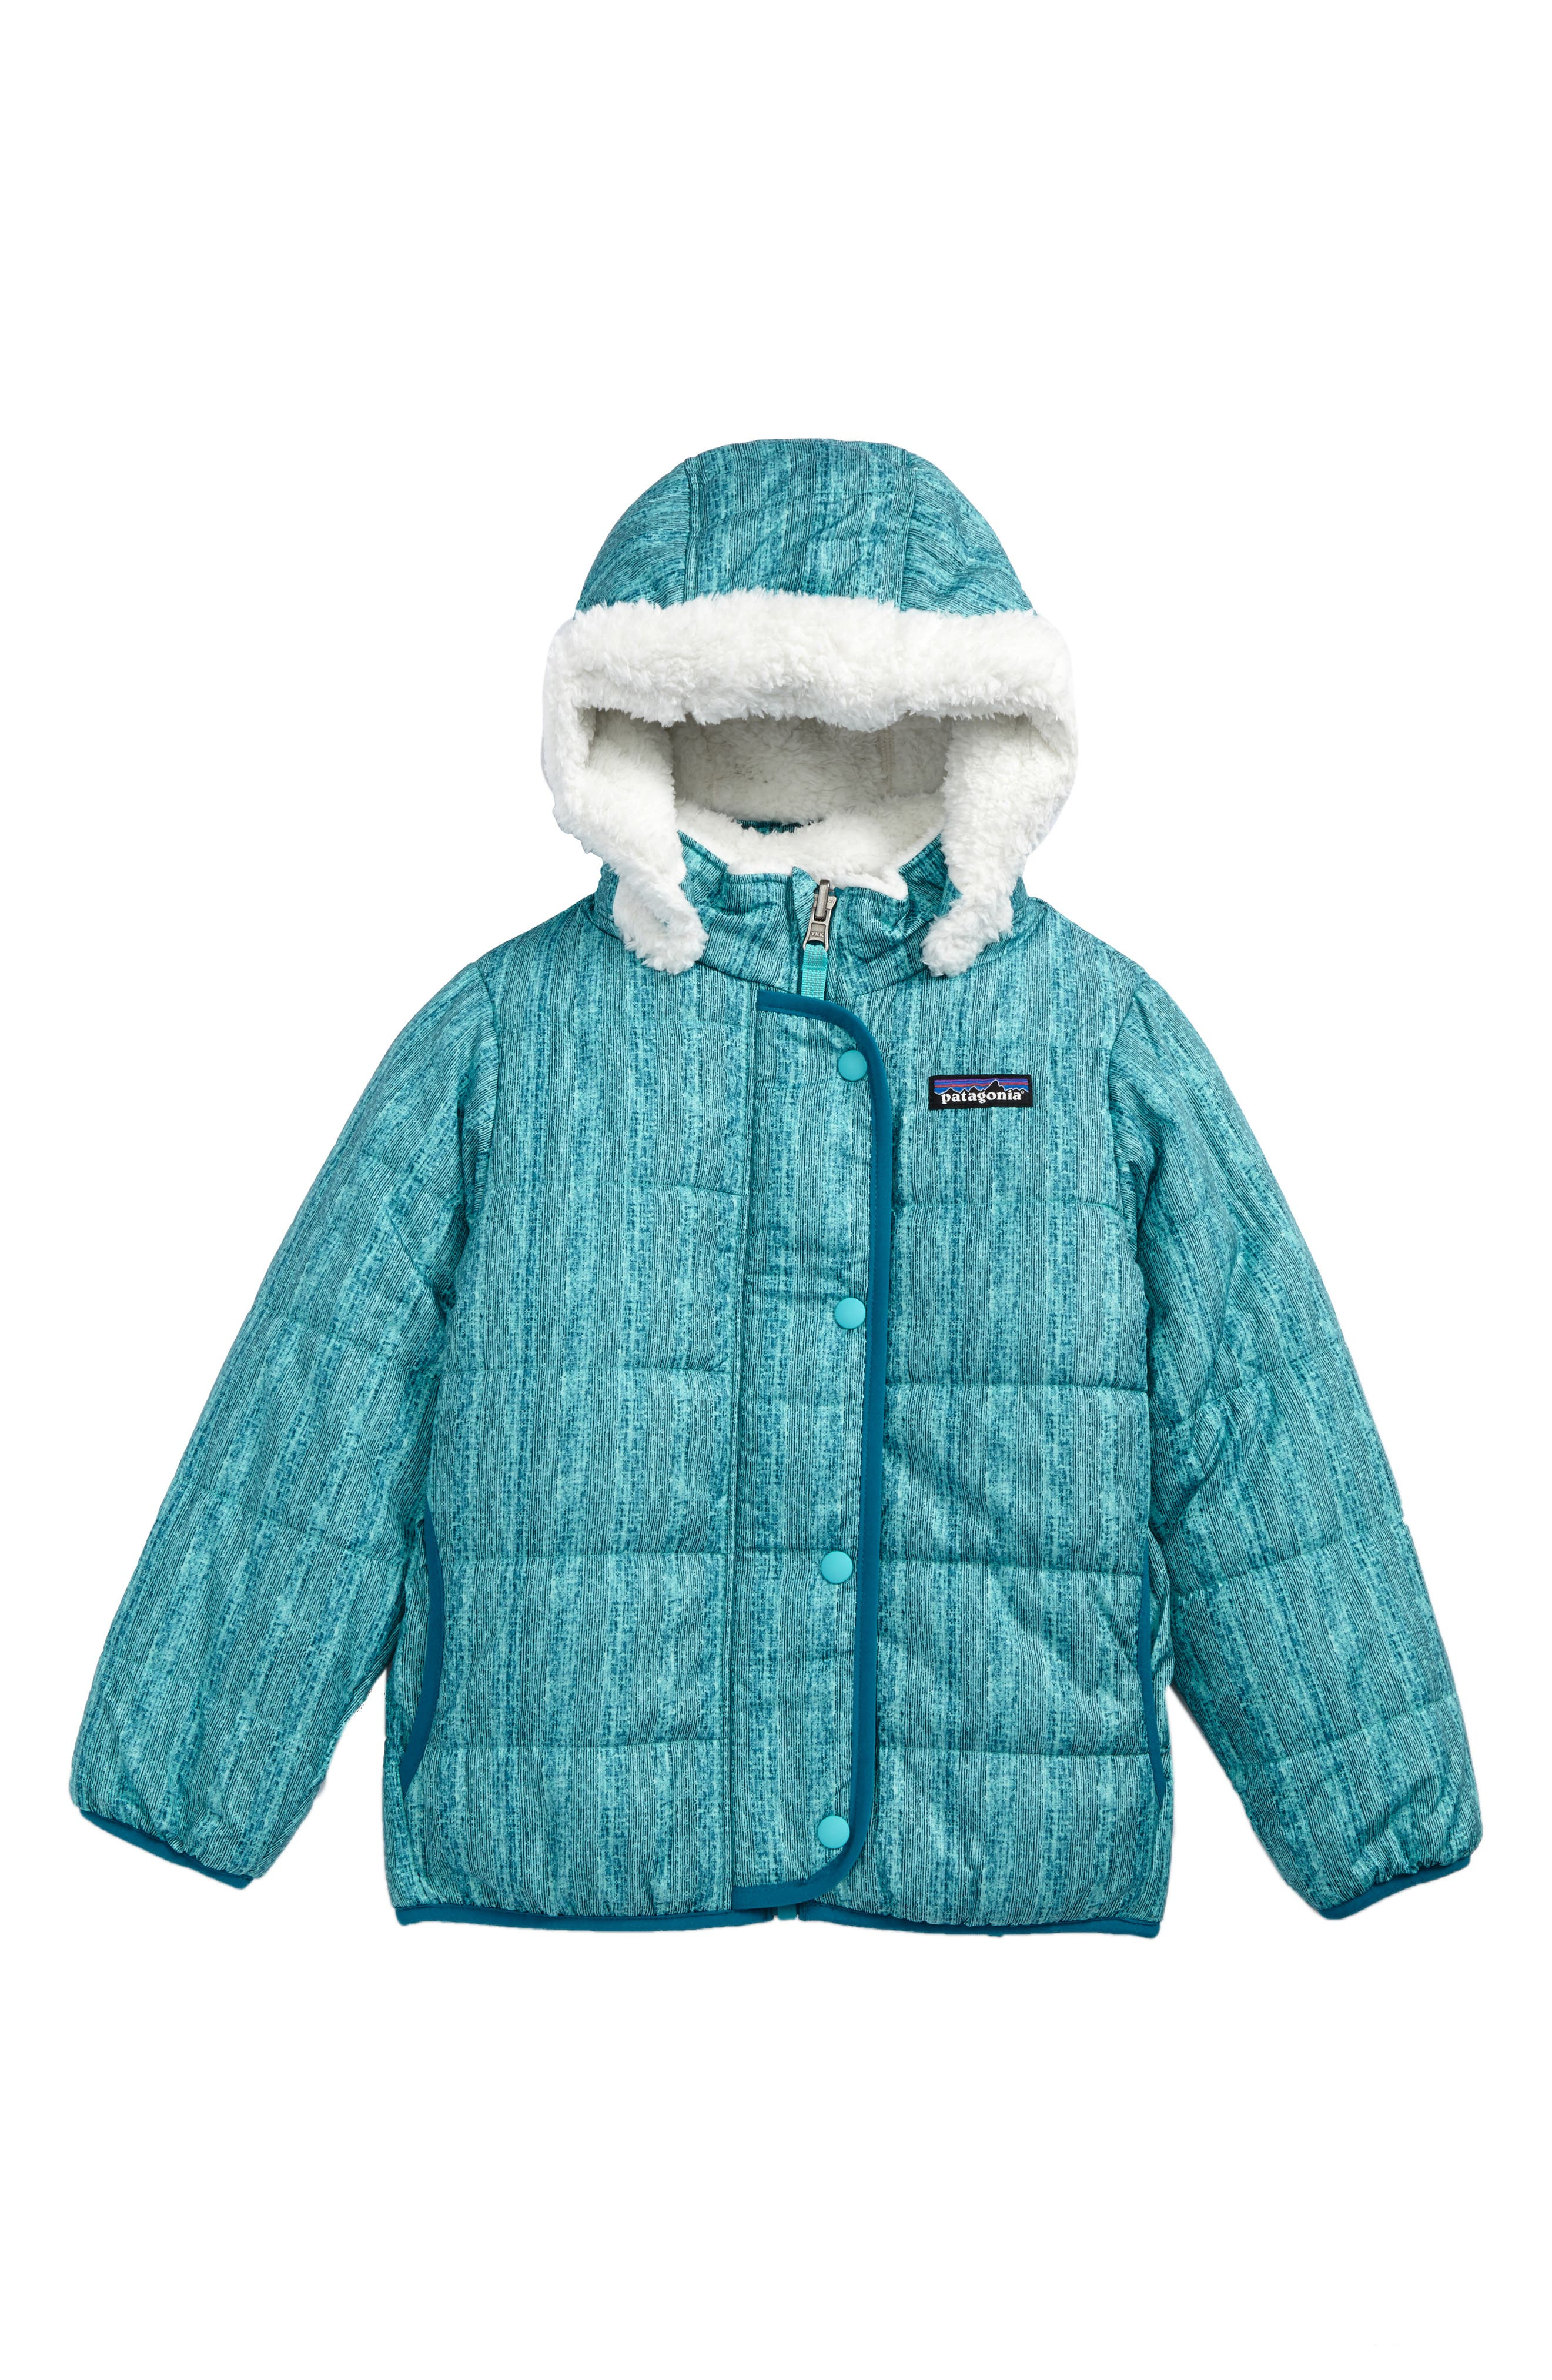 Dream Song Water Repellent Reversible Jacket,                             Main thumbnail 1, color,                             Downstream Dobby/ Strait Blue